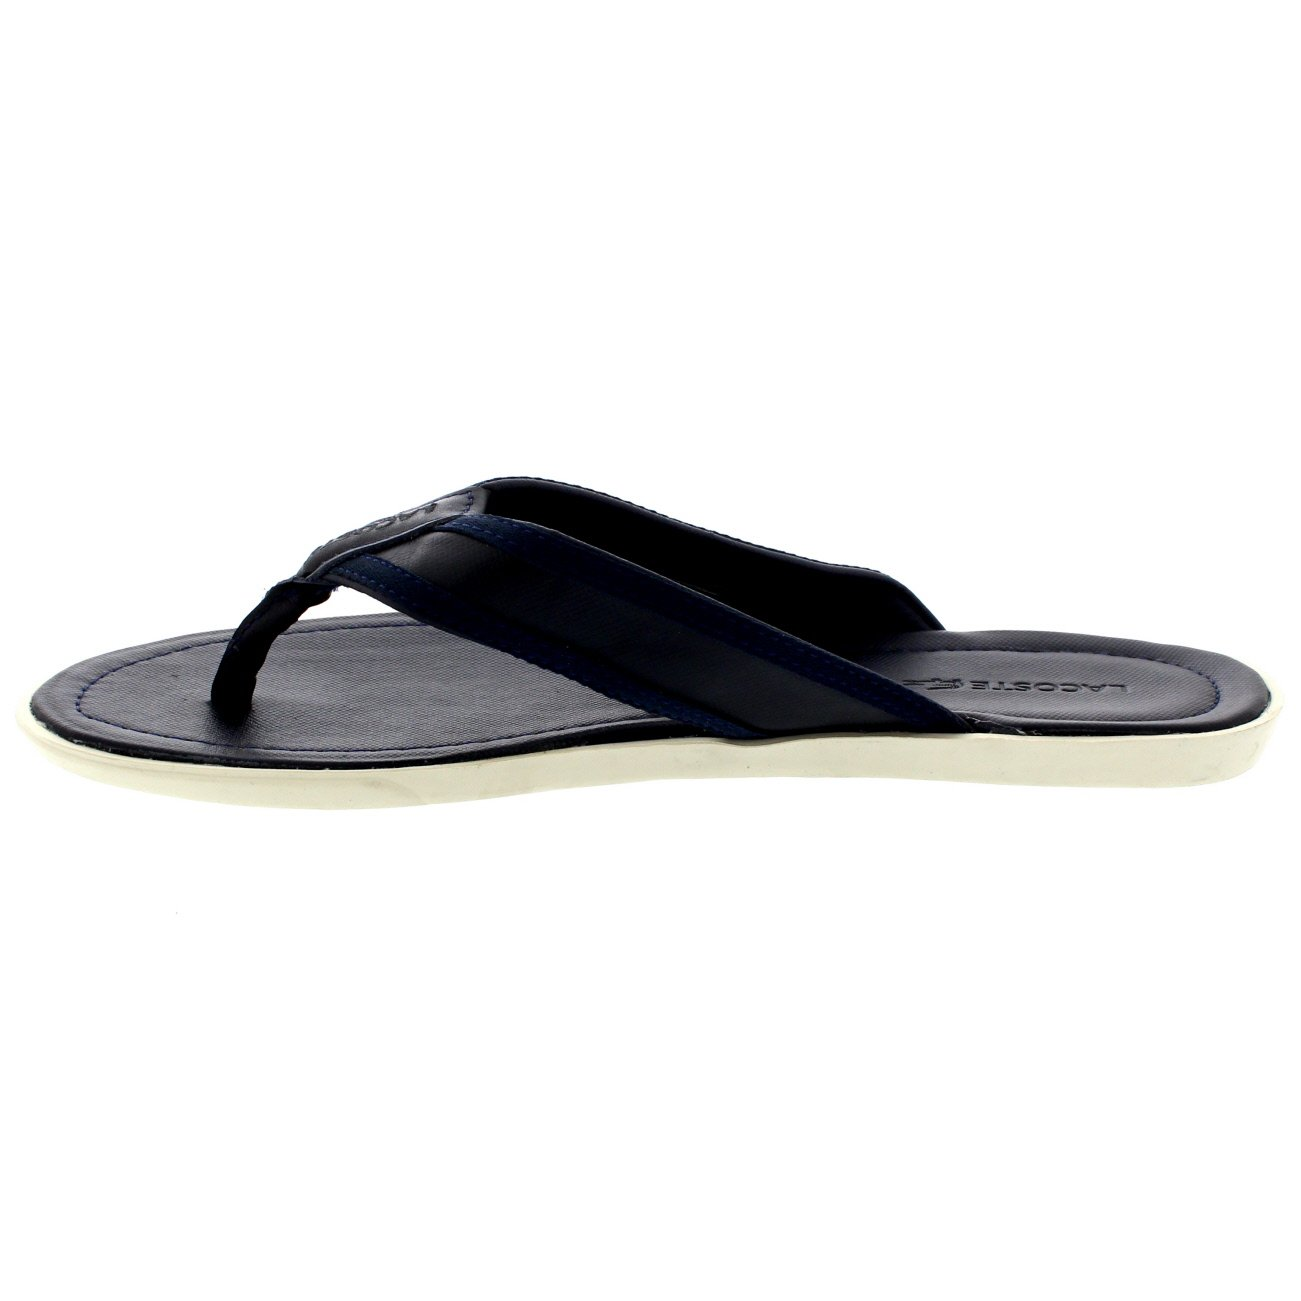 5f440166d Mens Lacoste Carros 6 Leather Fabric Vacation Flip Flops Beach Sandals -  Dark Blue - 13  Amazon.ca  Shoes   Handbags